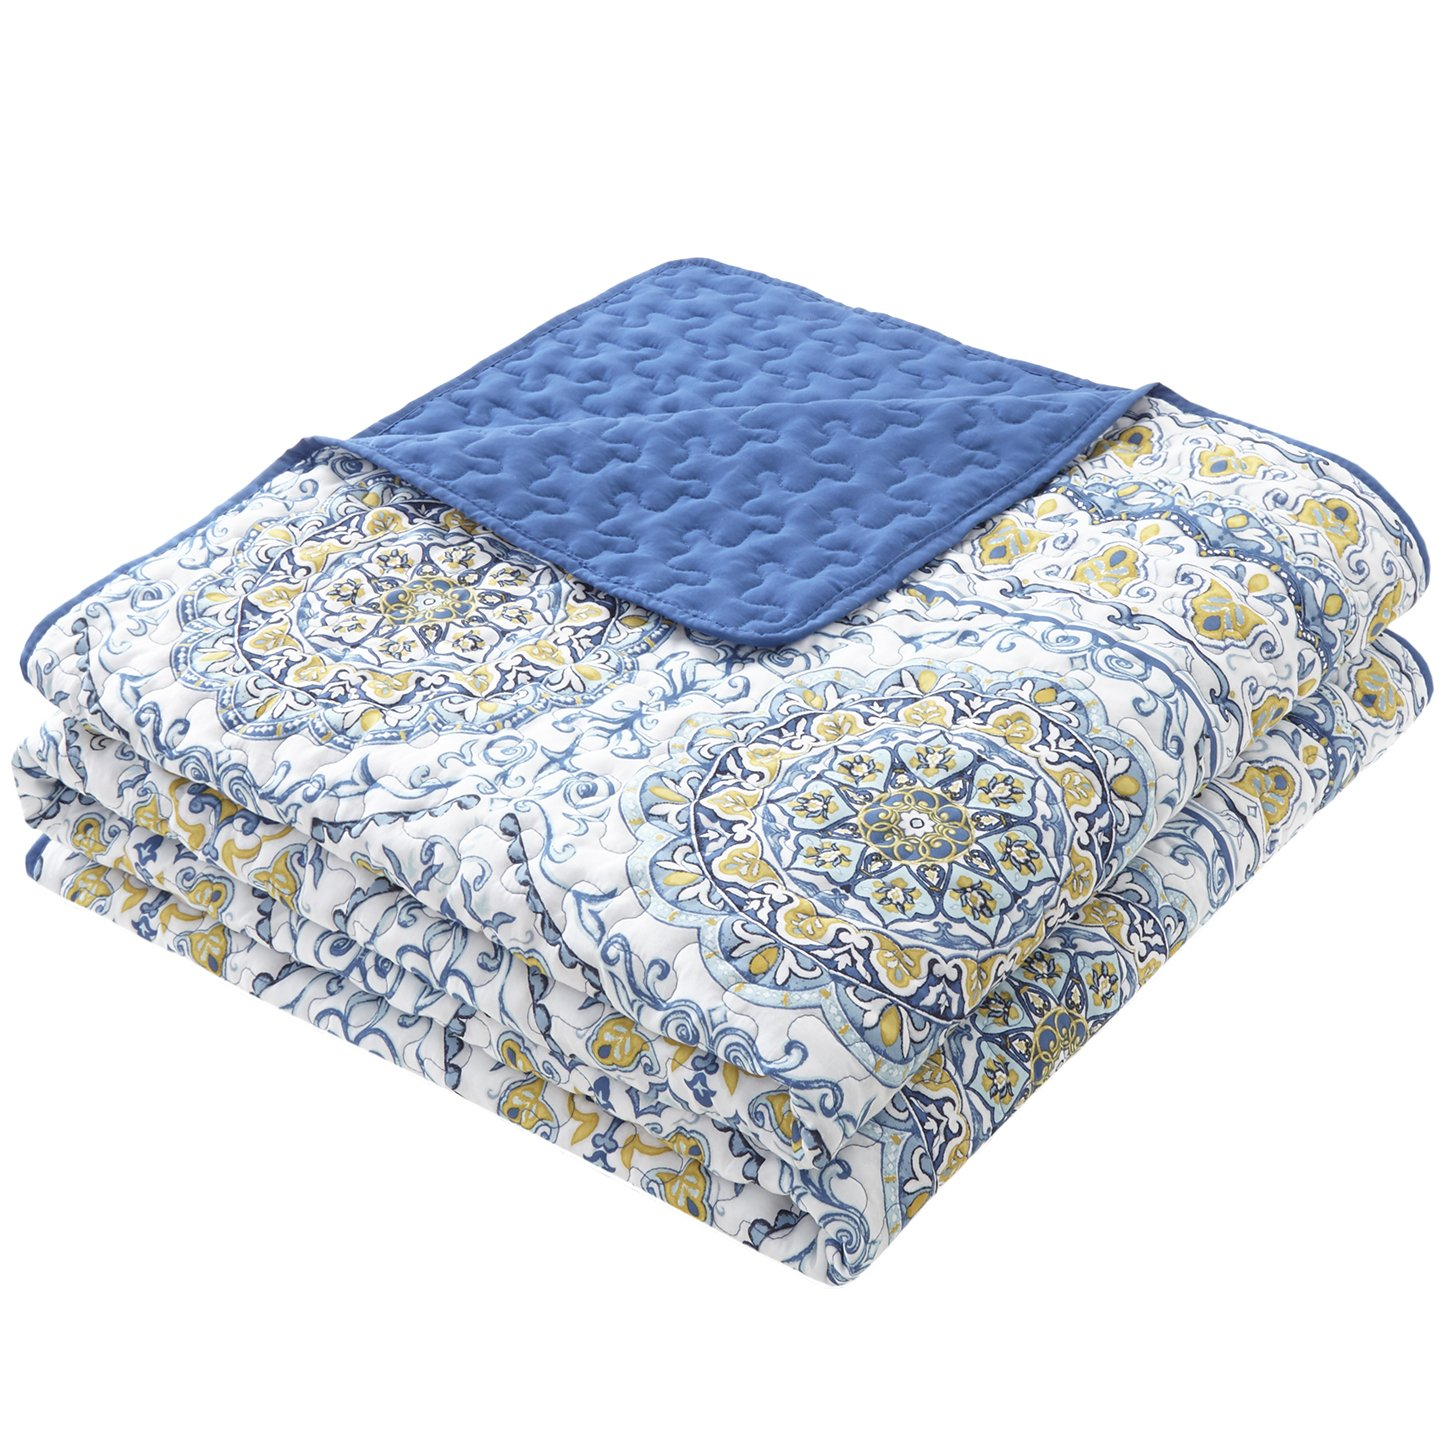 Home Essence Taya 3 Piece King Quilt Set Reversible Solid Printed Medallions Pattern Light-Weight Rustic Coverlet Soft Microfiber Bedding for All Season, Blue by Home Essence (Image #3)